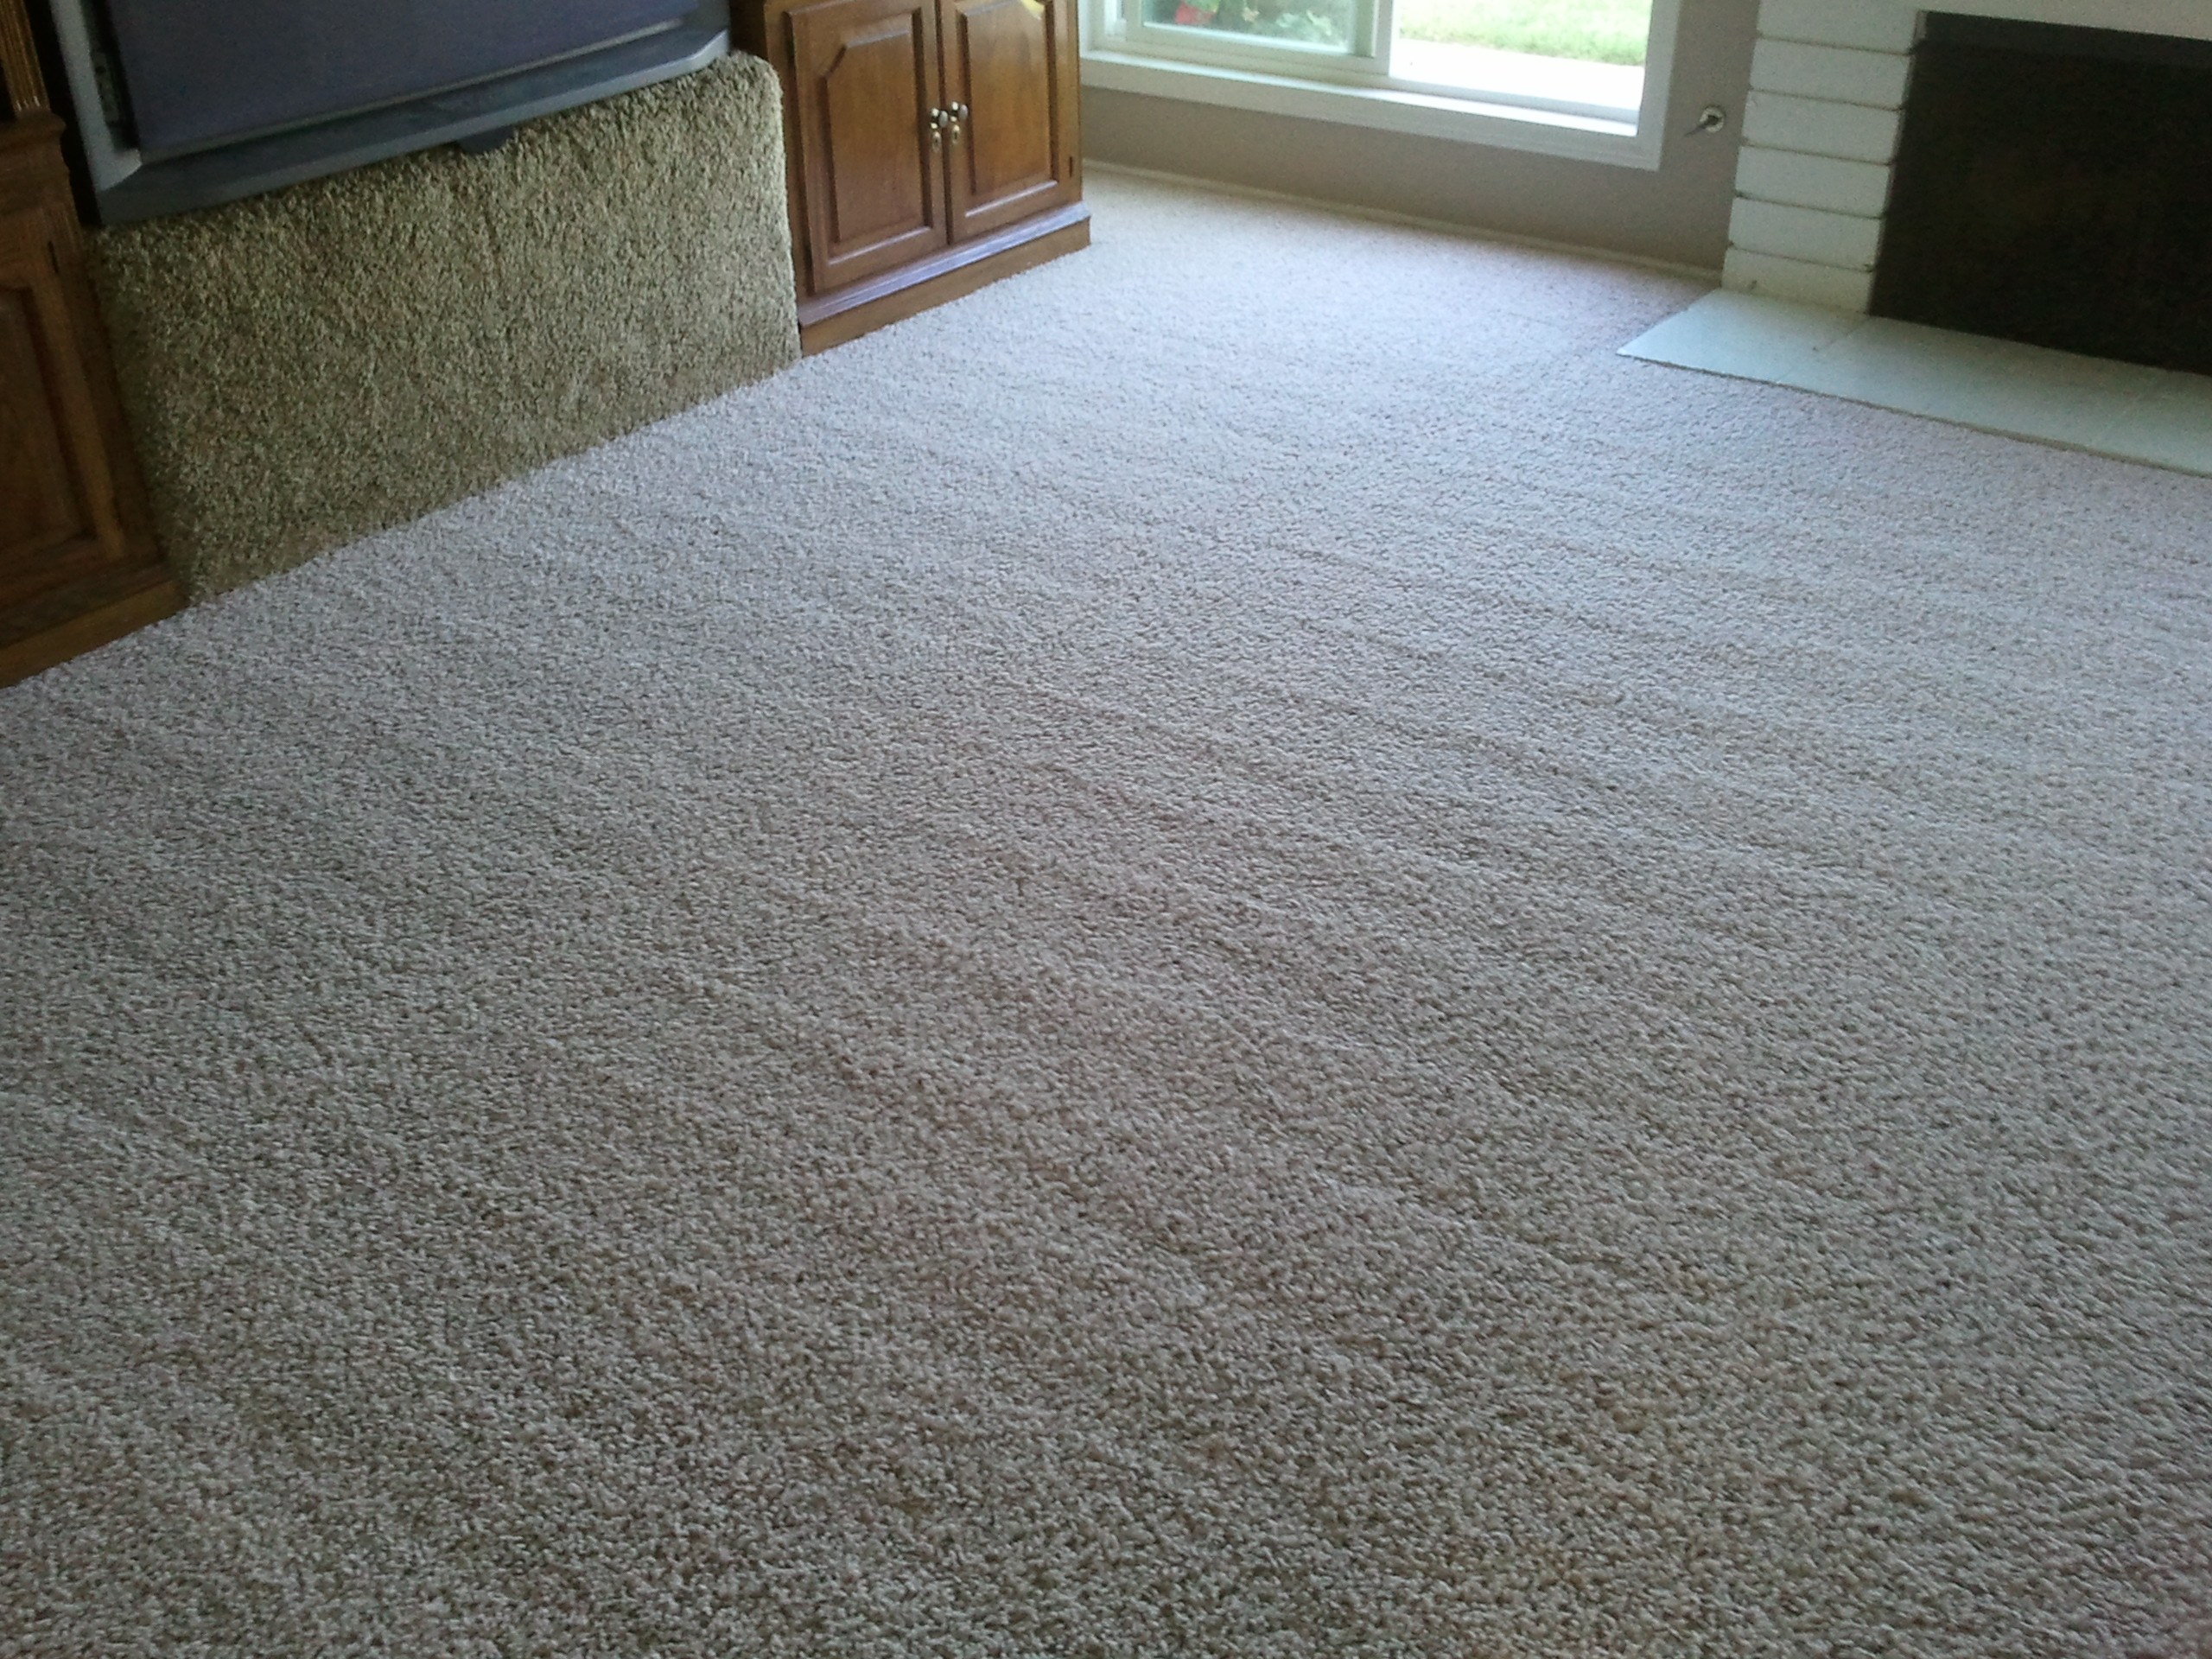 Best Types of Carpet for High Traffic Areas